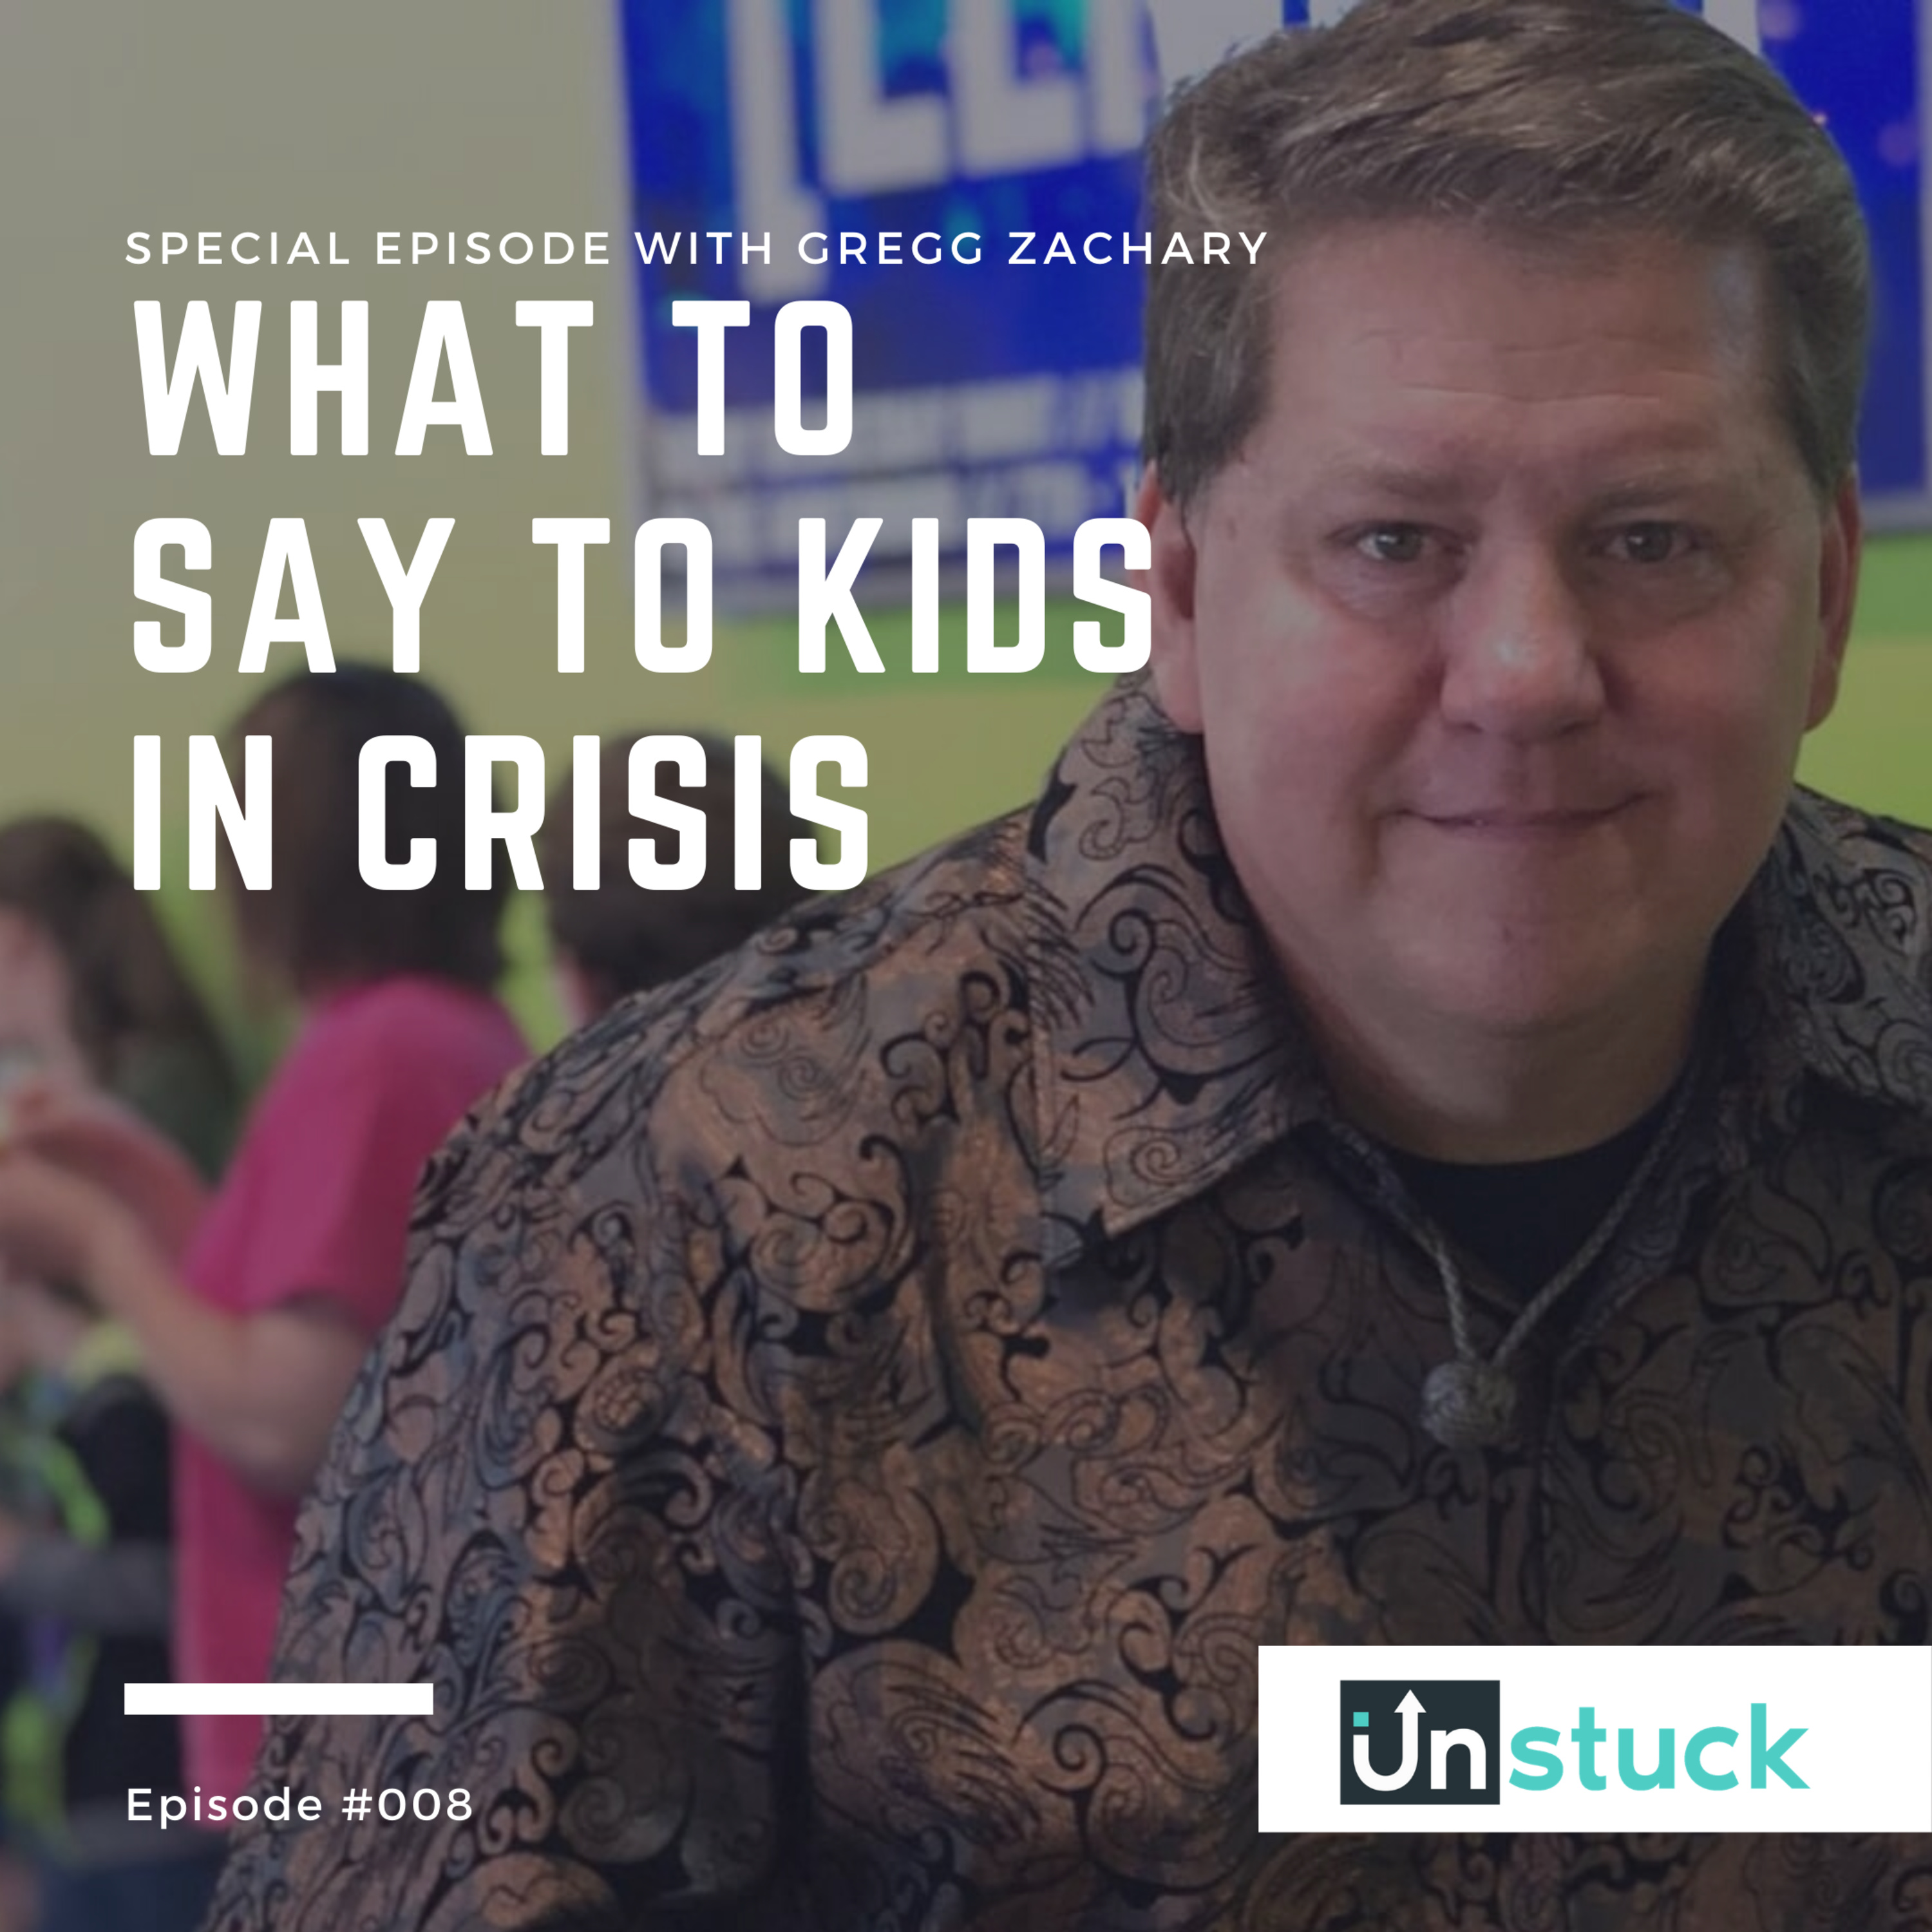 What Say To Kids In Crisis